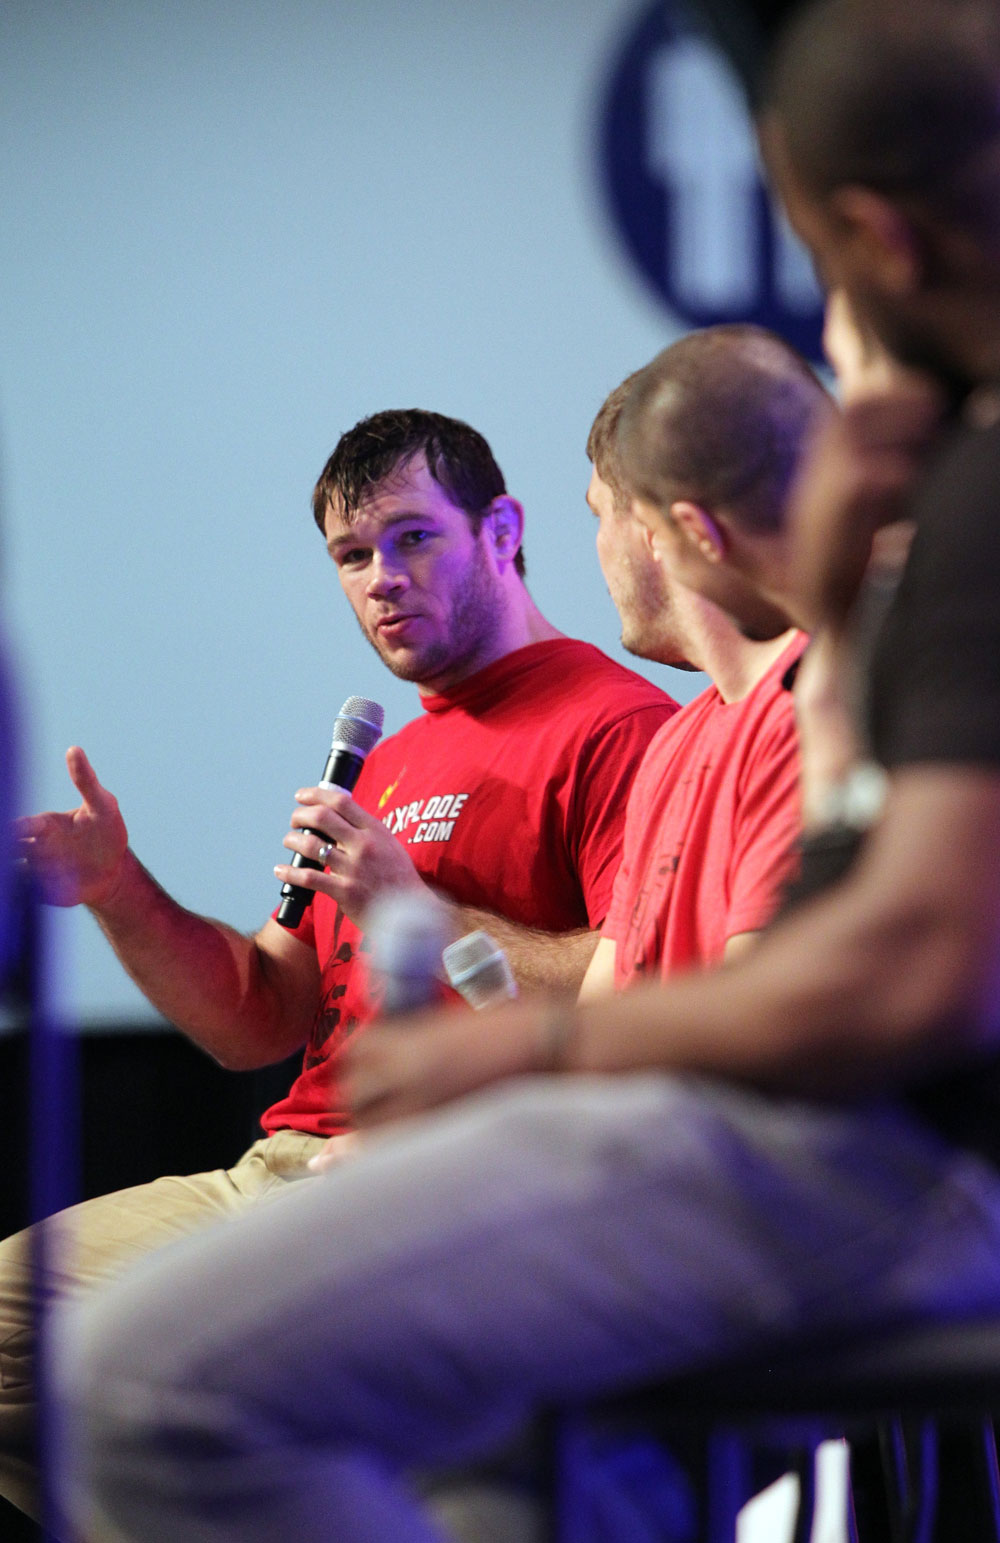 UFC Fighter Forrest Griffin speaks during a Q&amp;A session at the UFC Fan Expo